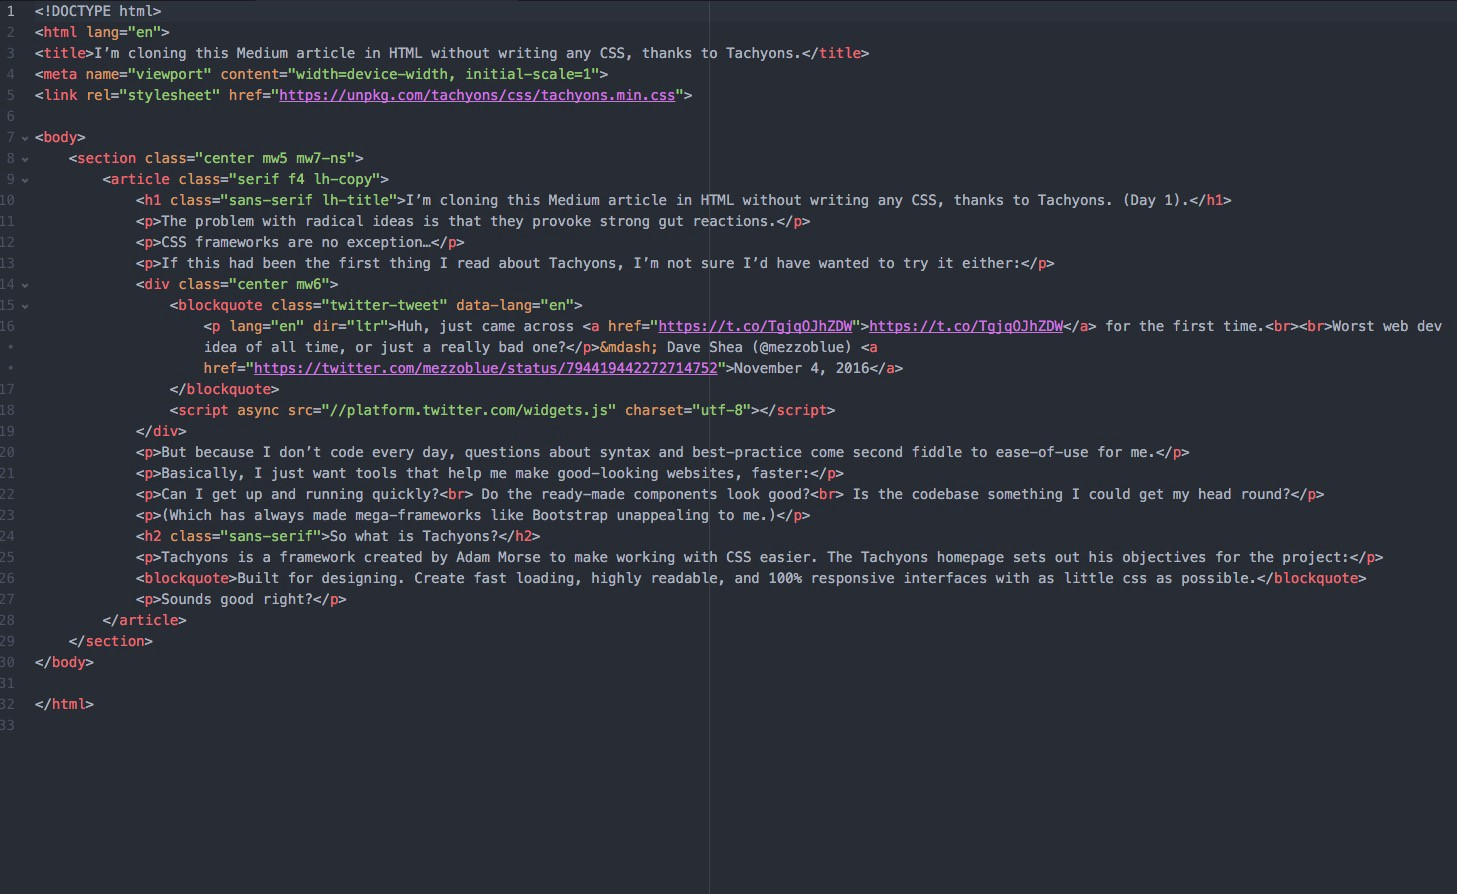 I\'m cloning this Medium article in HTML without writing any CSS ...